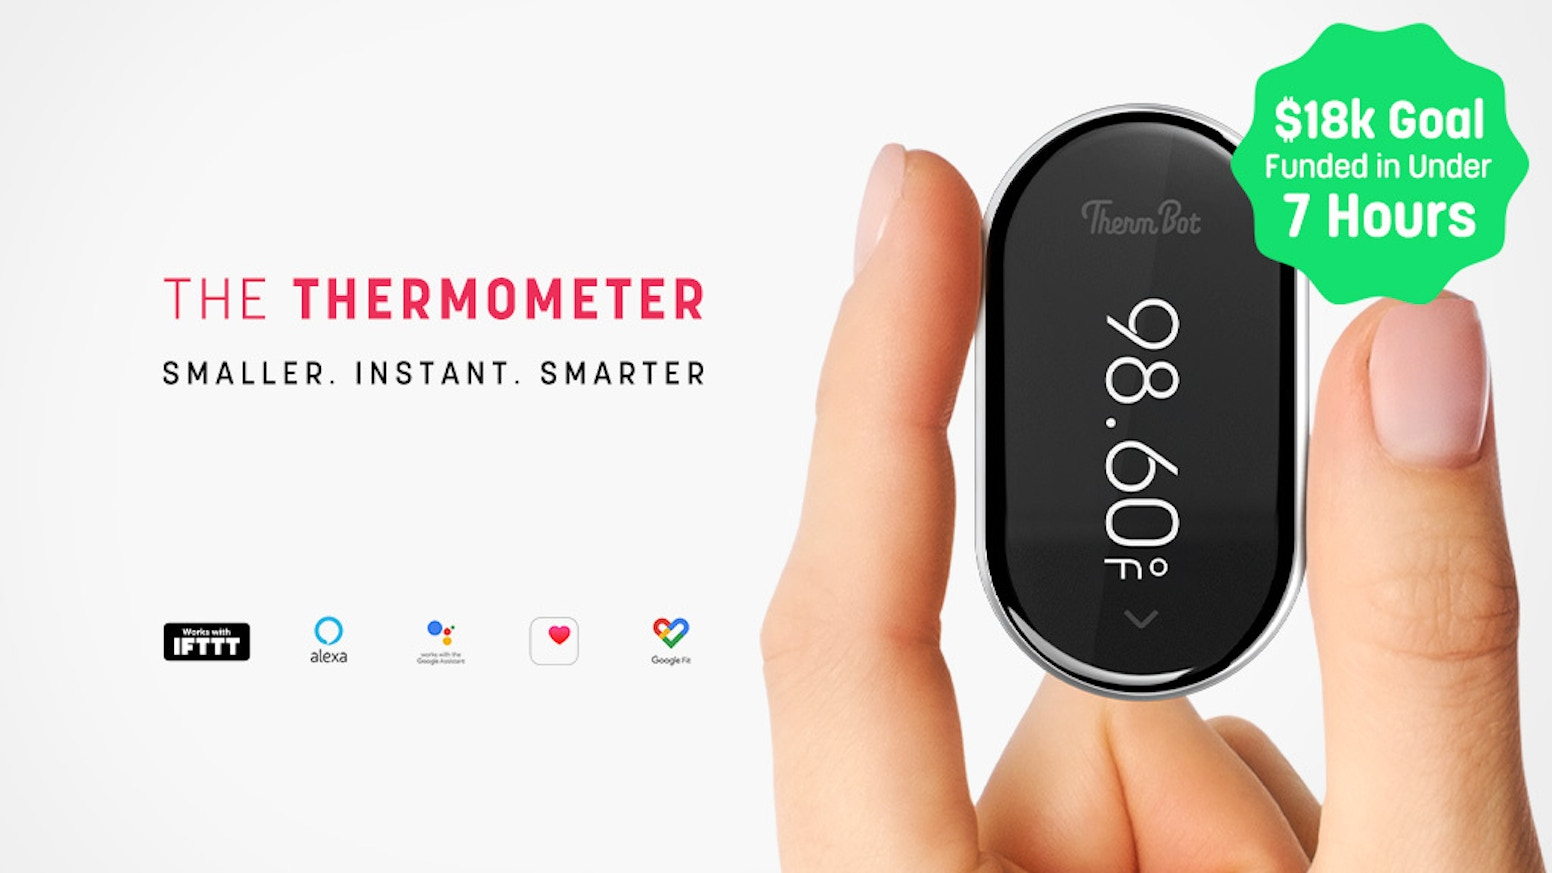 At home or on the go, ThermBot delivers contactless body temperature readings at clinical accuracy, plus smart home assistants & IFTTT integration.